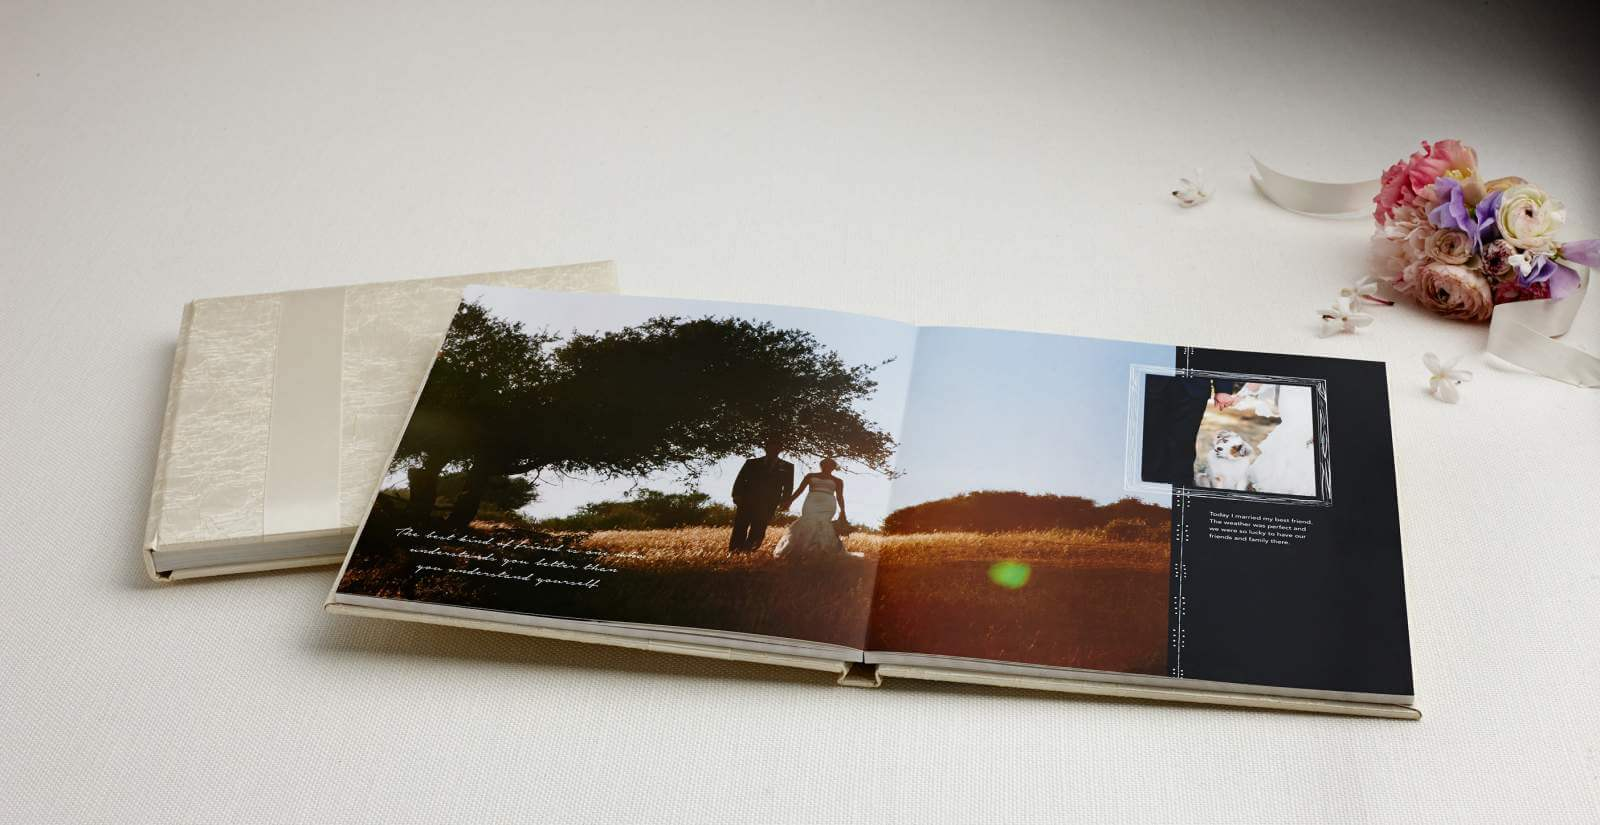 A rustic-style wedding photo book.